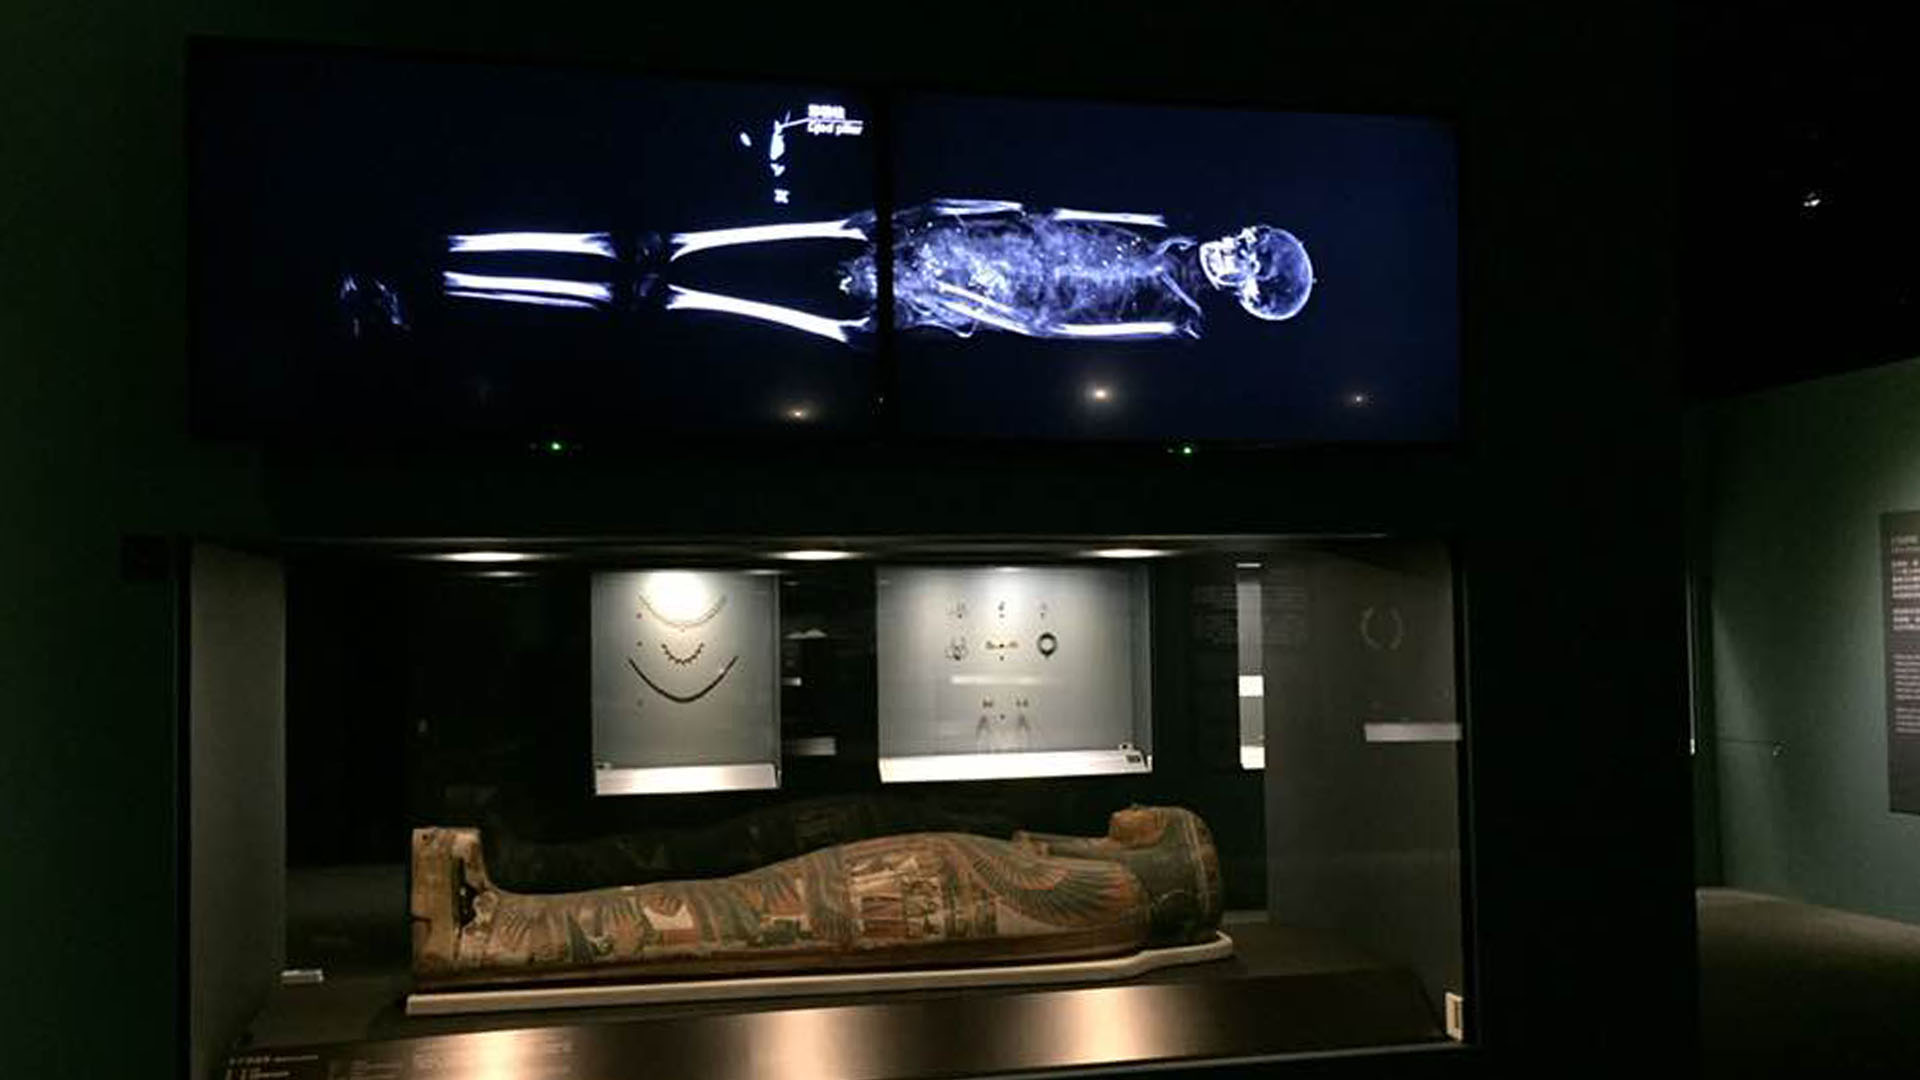 Egyptian Mummies from the British Museum - National Palace Museum - Taipei - Taiwan